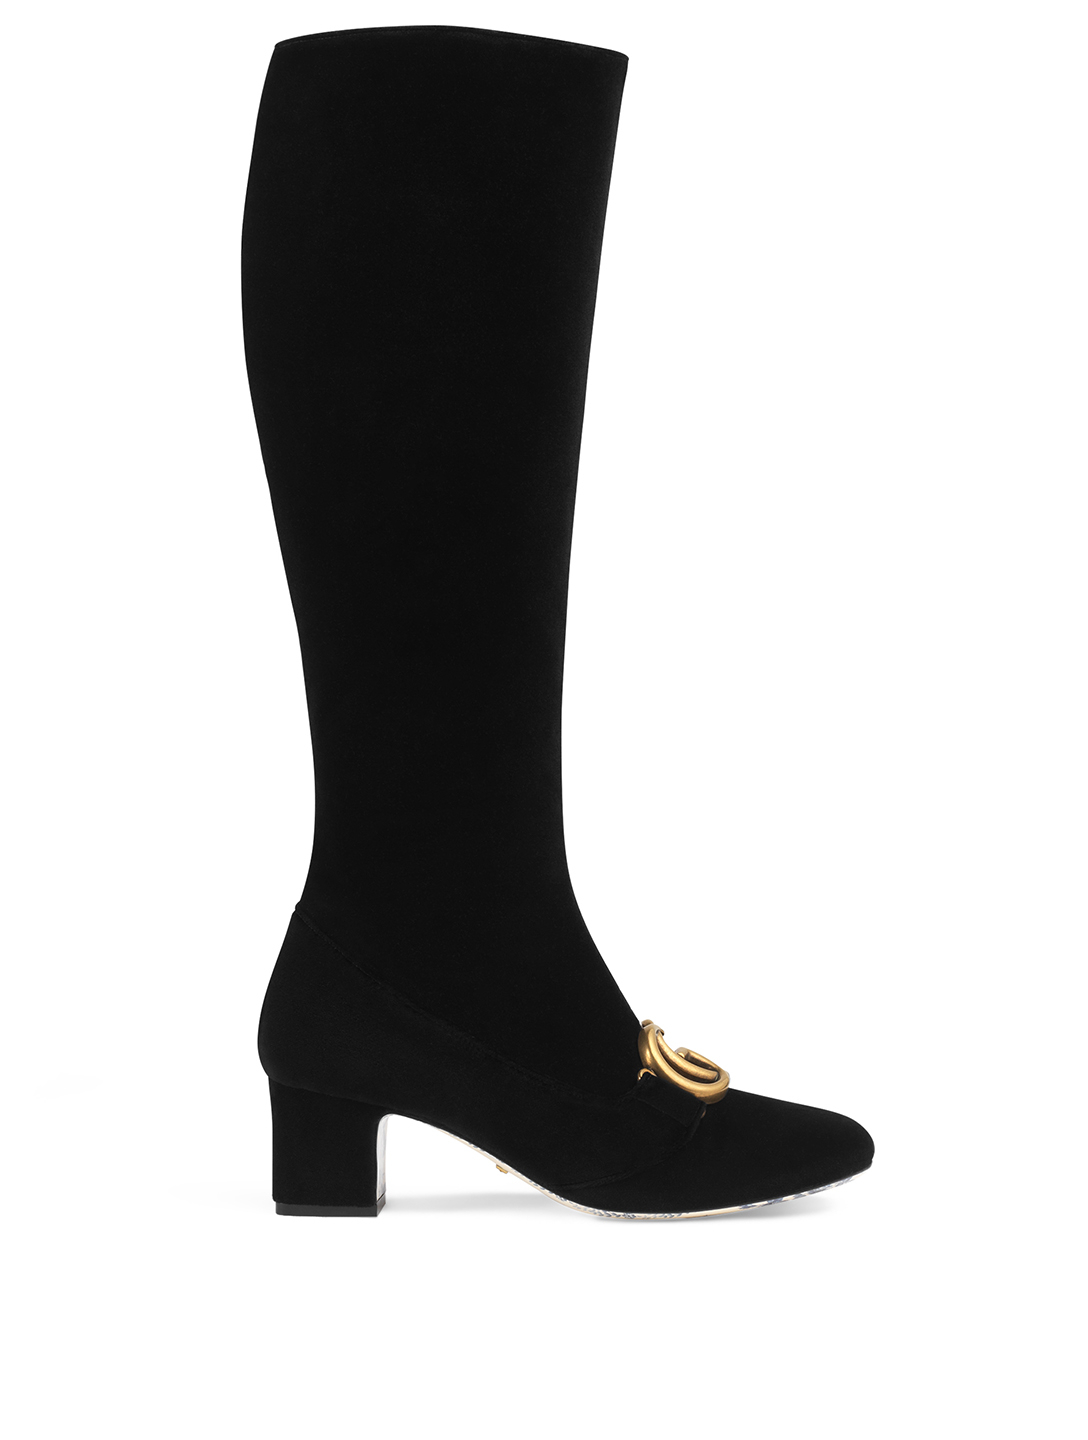 GUCCI Victoire Velvet Knee-High Boots Womens Black